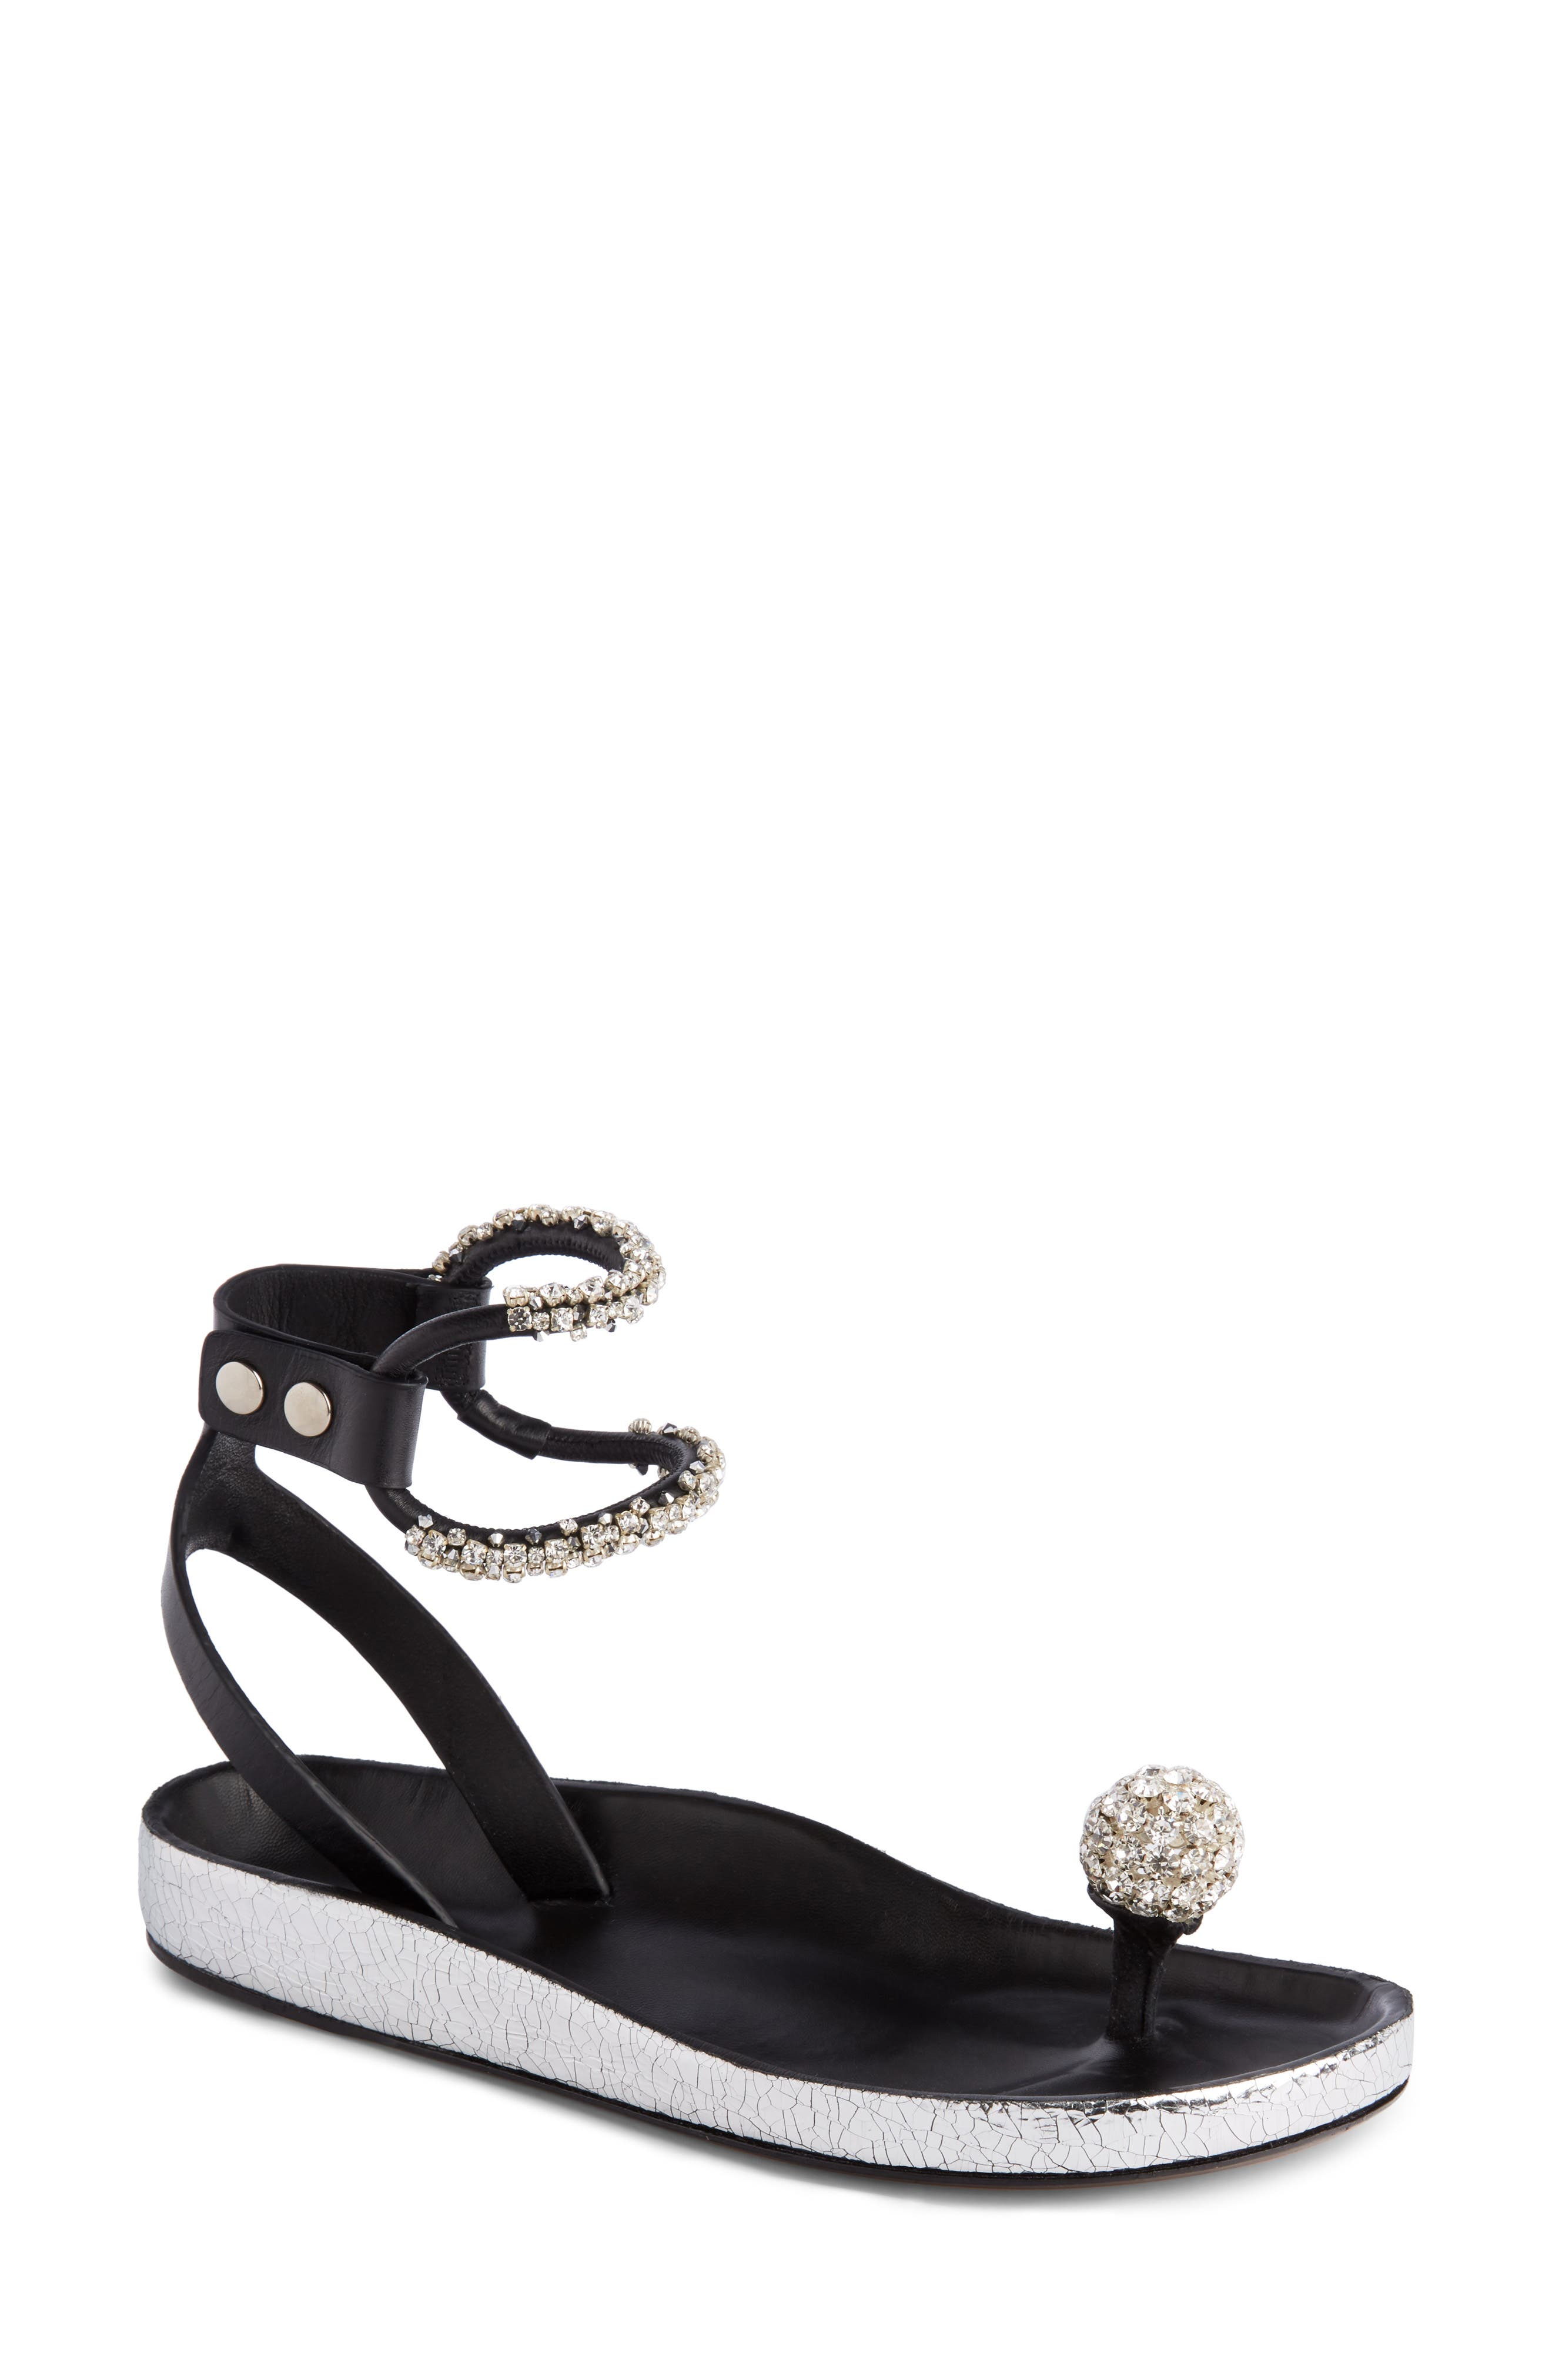 Ecly Crystal Ball Sandal,                         Main,                         color, Silver